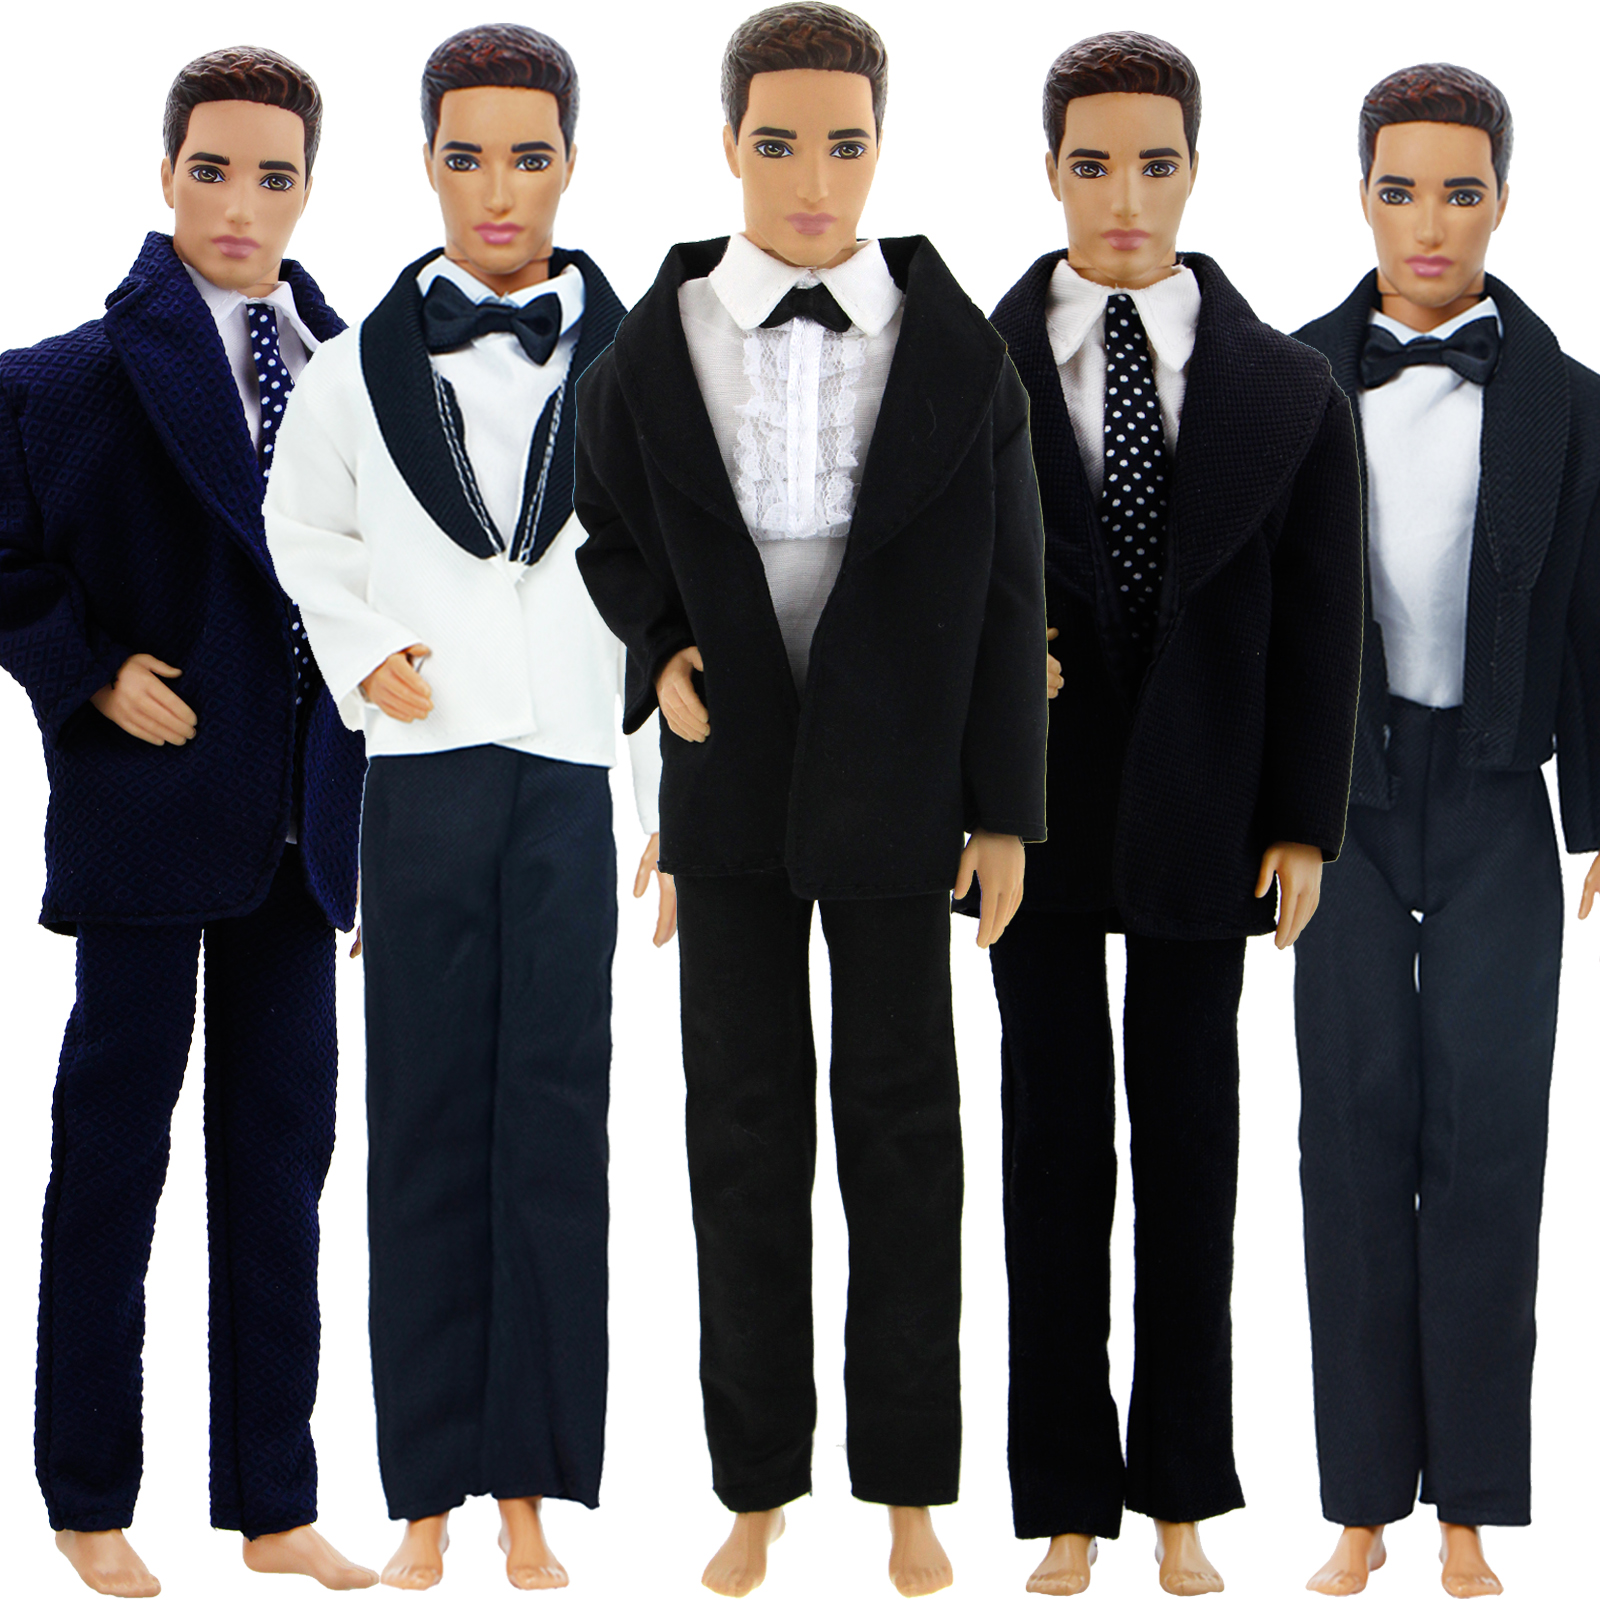 High Quality Handmade Men's Outfit For Barbie Doll Friend Ken Wedding Party Wear Formal Suit Tie Doll Clothes Accessories Toy